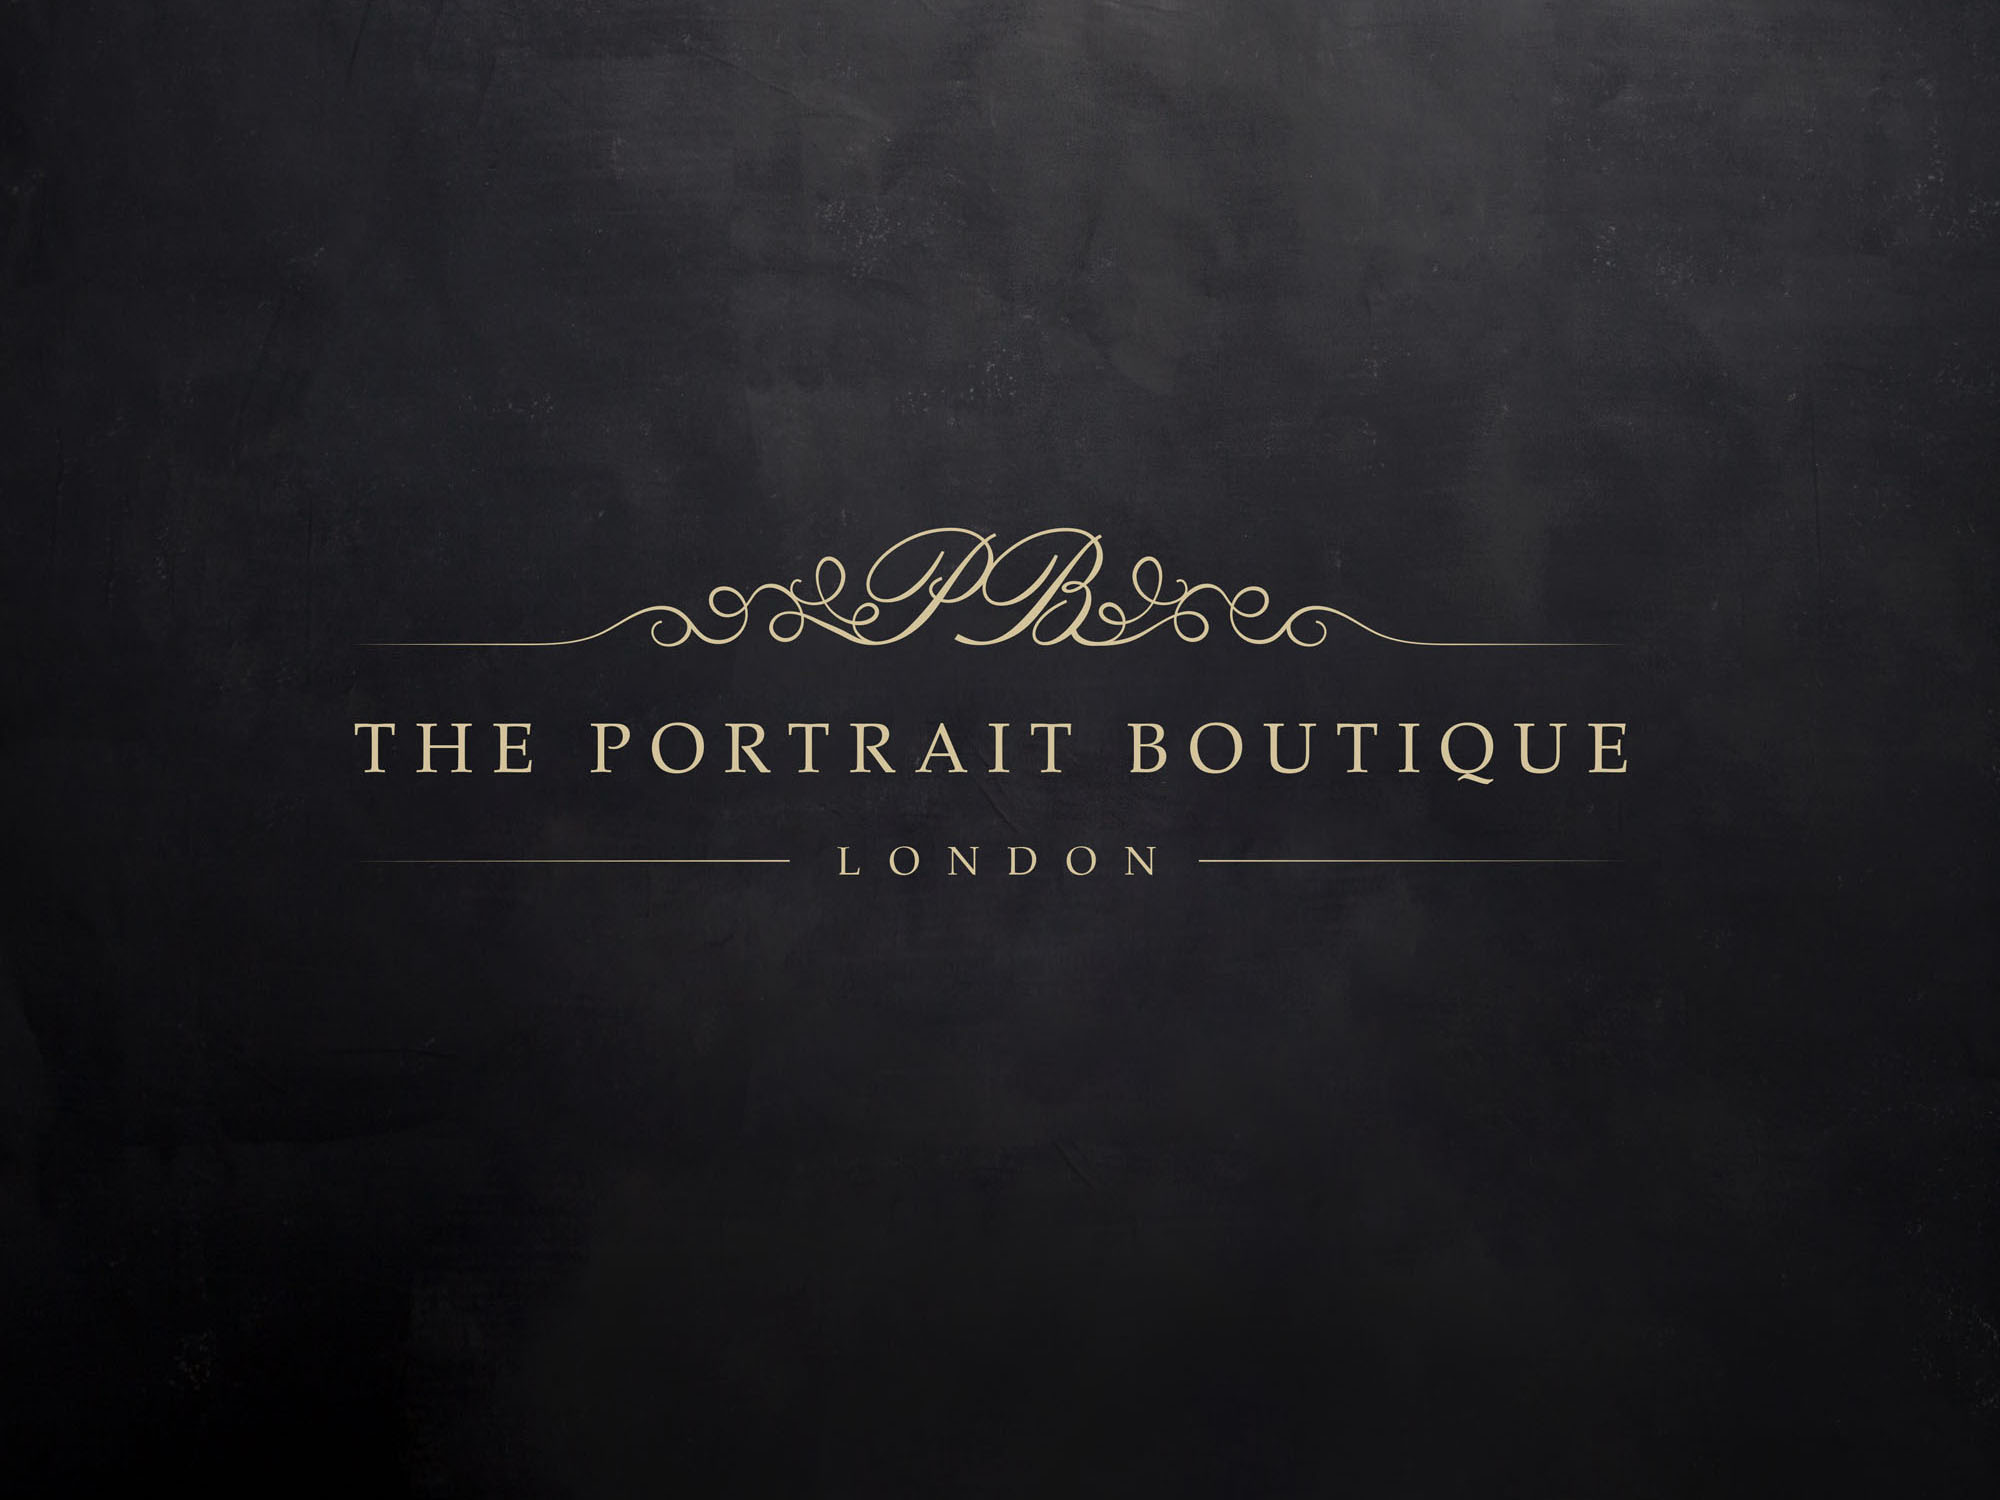 The Portrait Boutique Logo & Identity Design Project